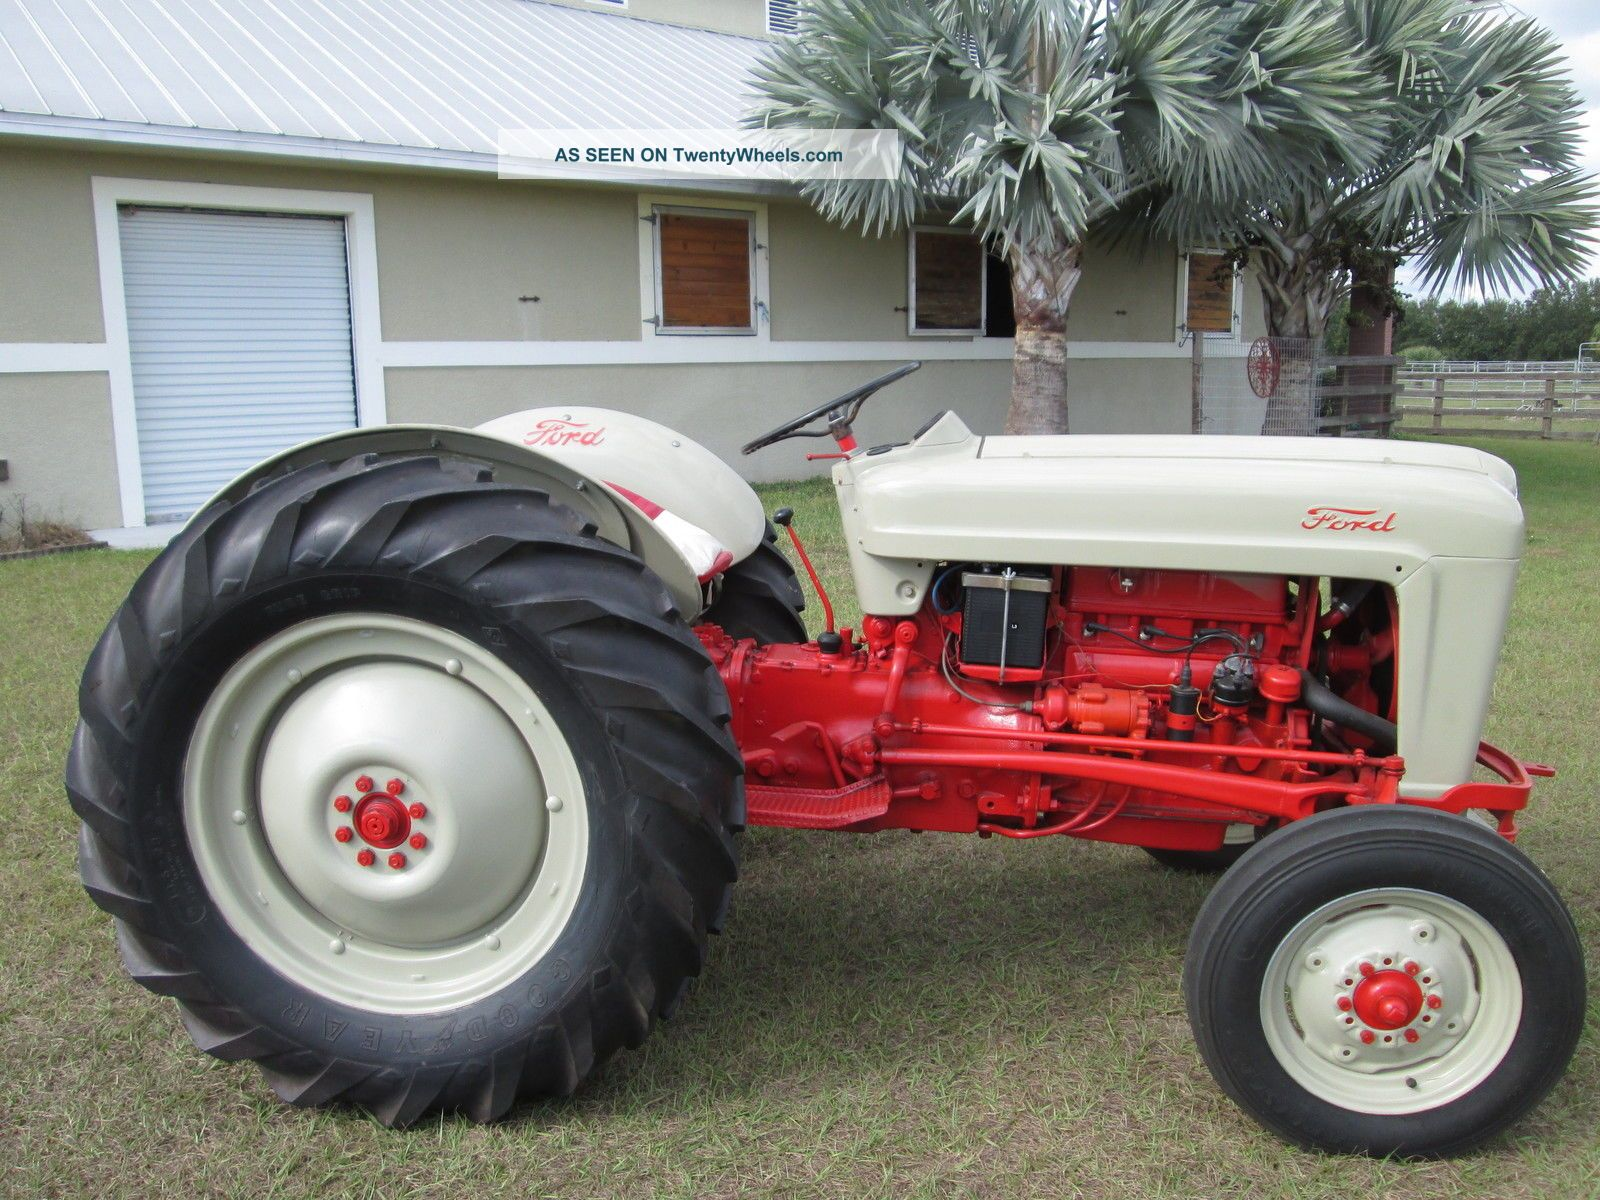 Ford Tractor Jubilee Model : Ford jubilee tractor awesome wow take a look